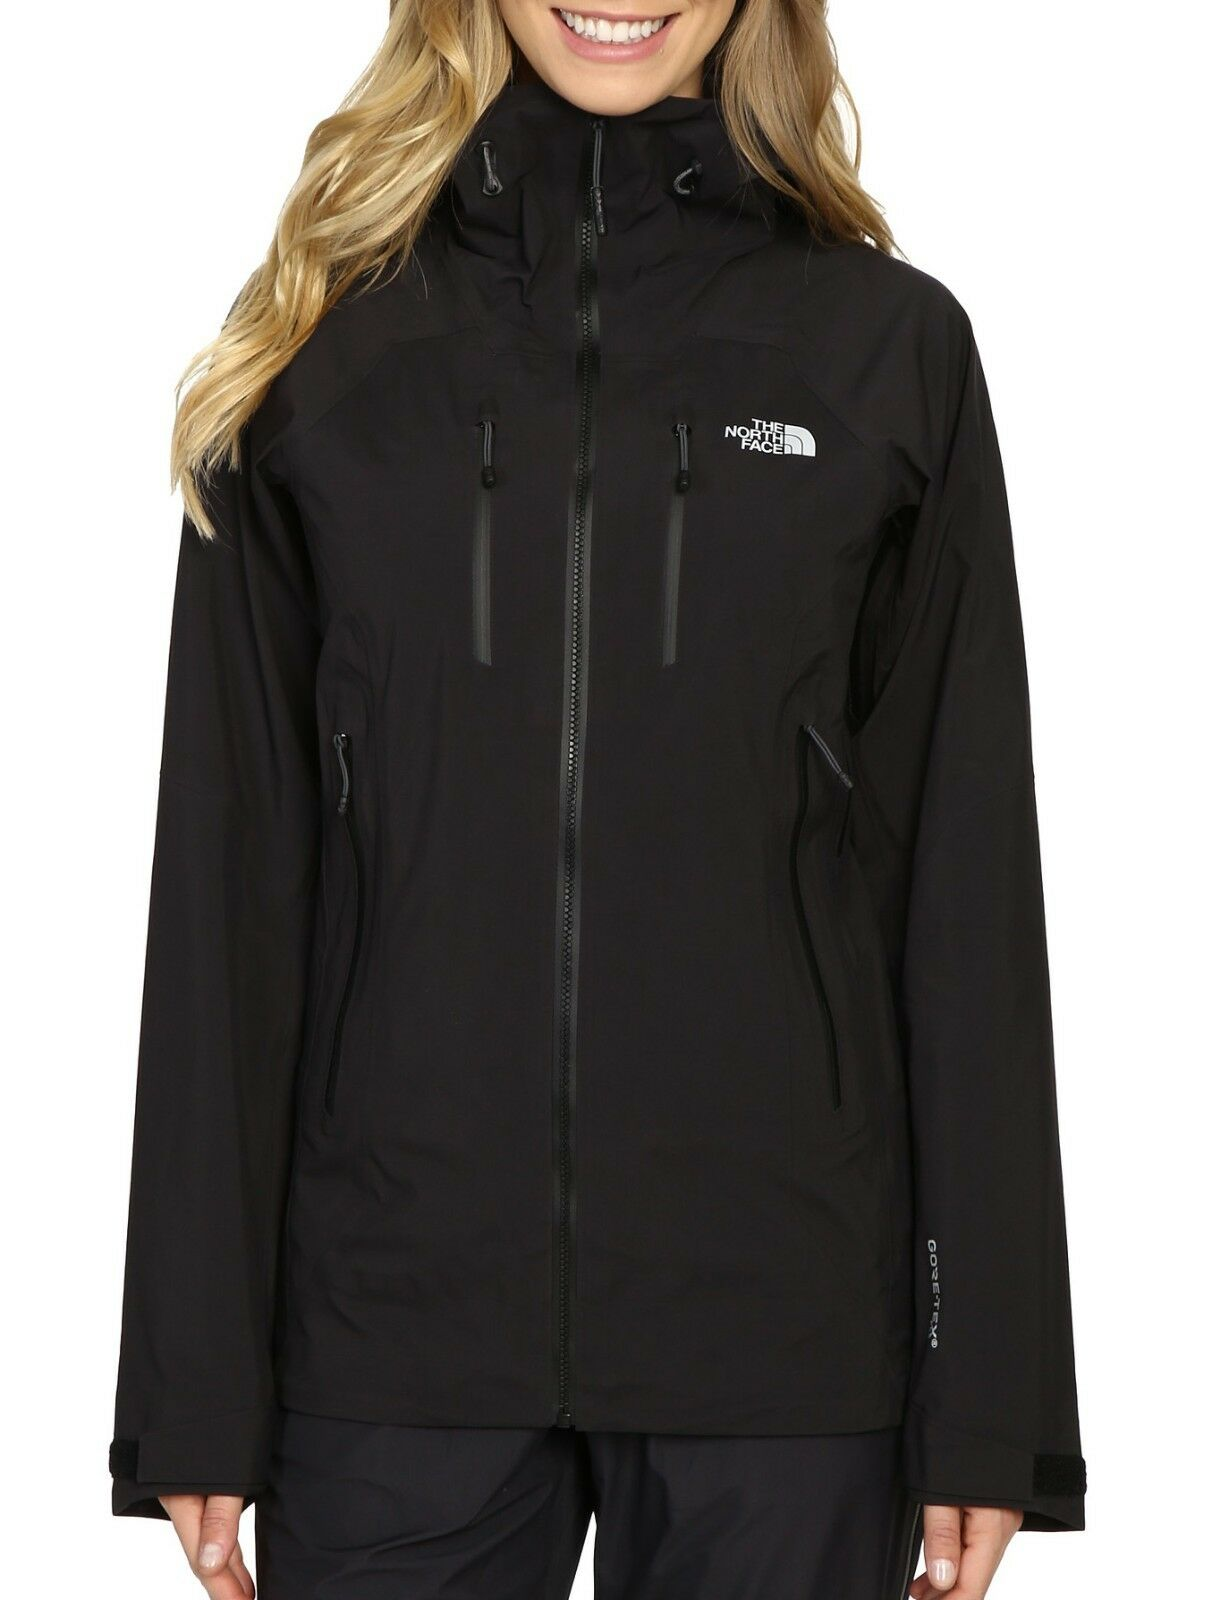 womens-north-face-black-dihedral-gore-tex-shell-jacket-m-new-599